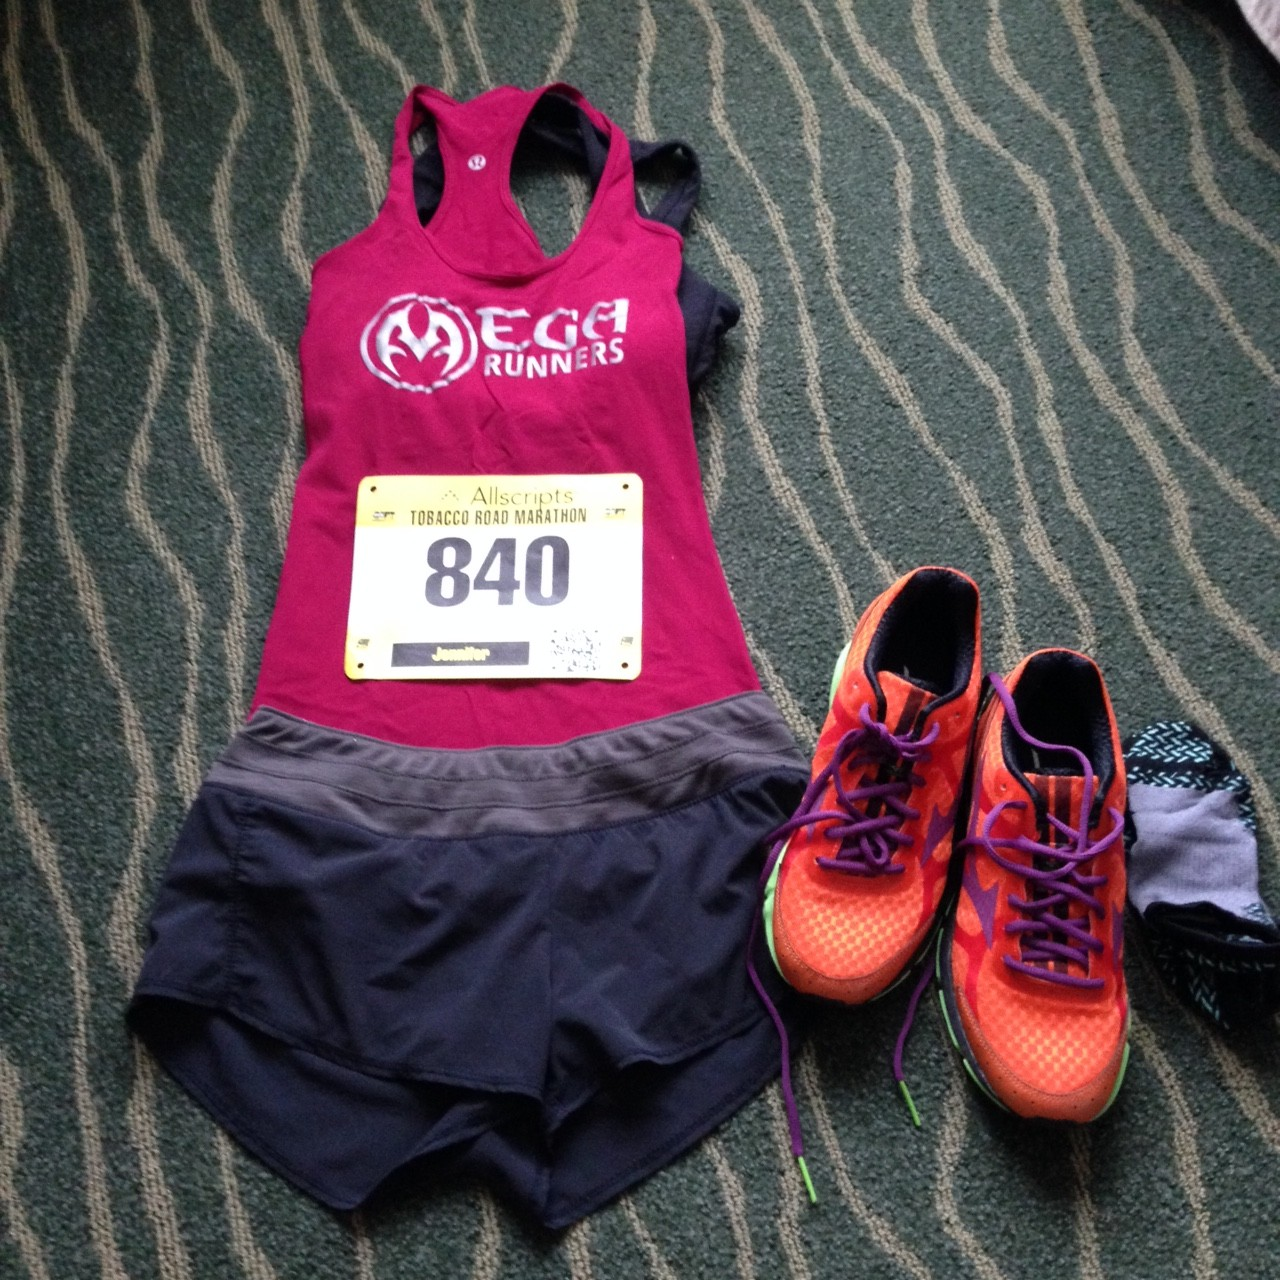 Getting the race outfit ready to go.  Relying on the trusty Mizuno Wave Riders (v 17) to get me through.